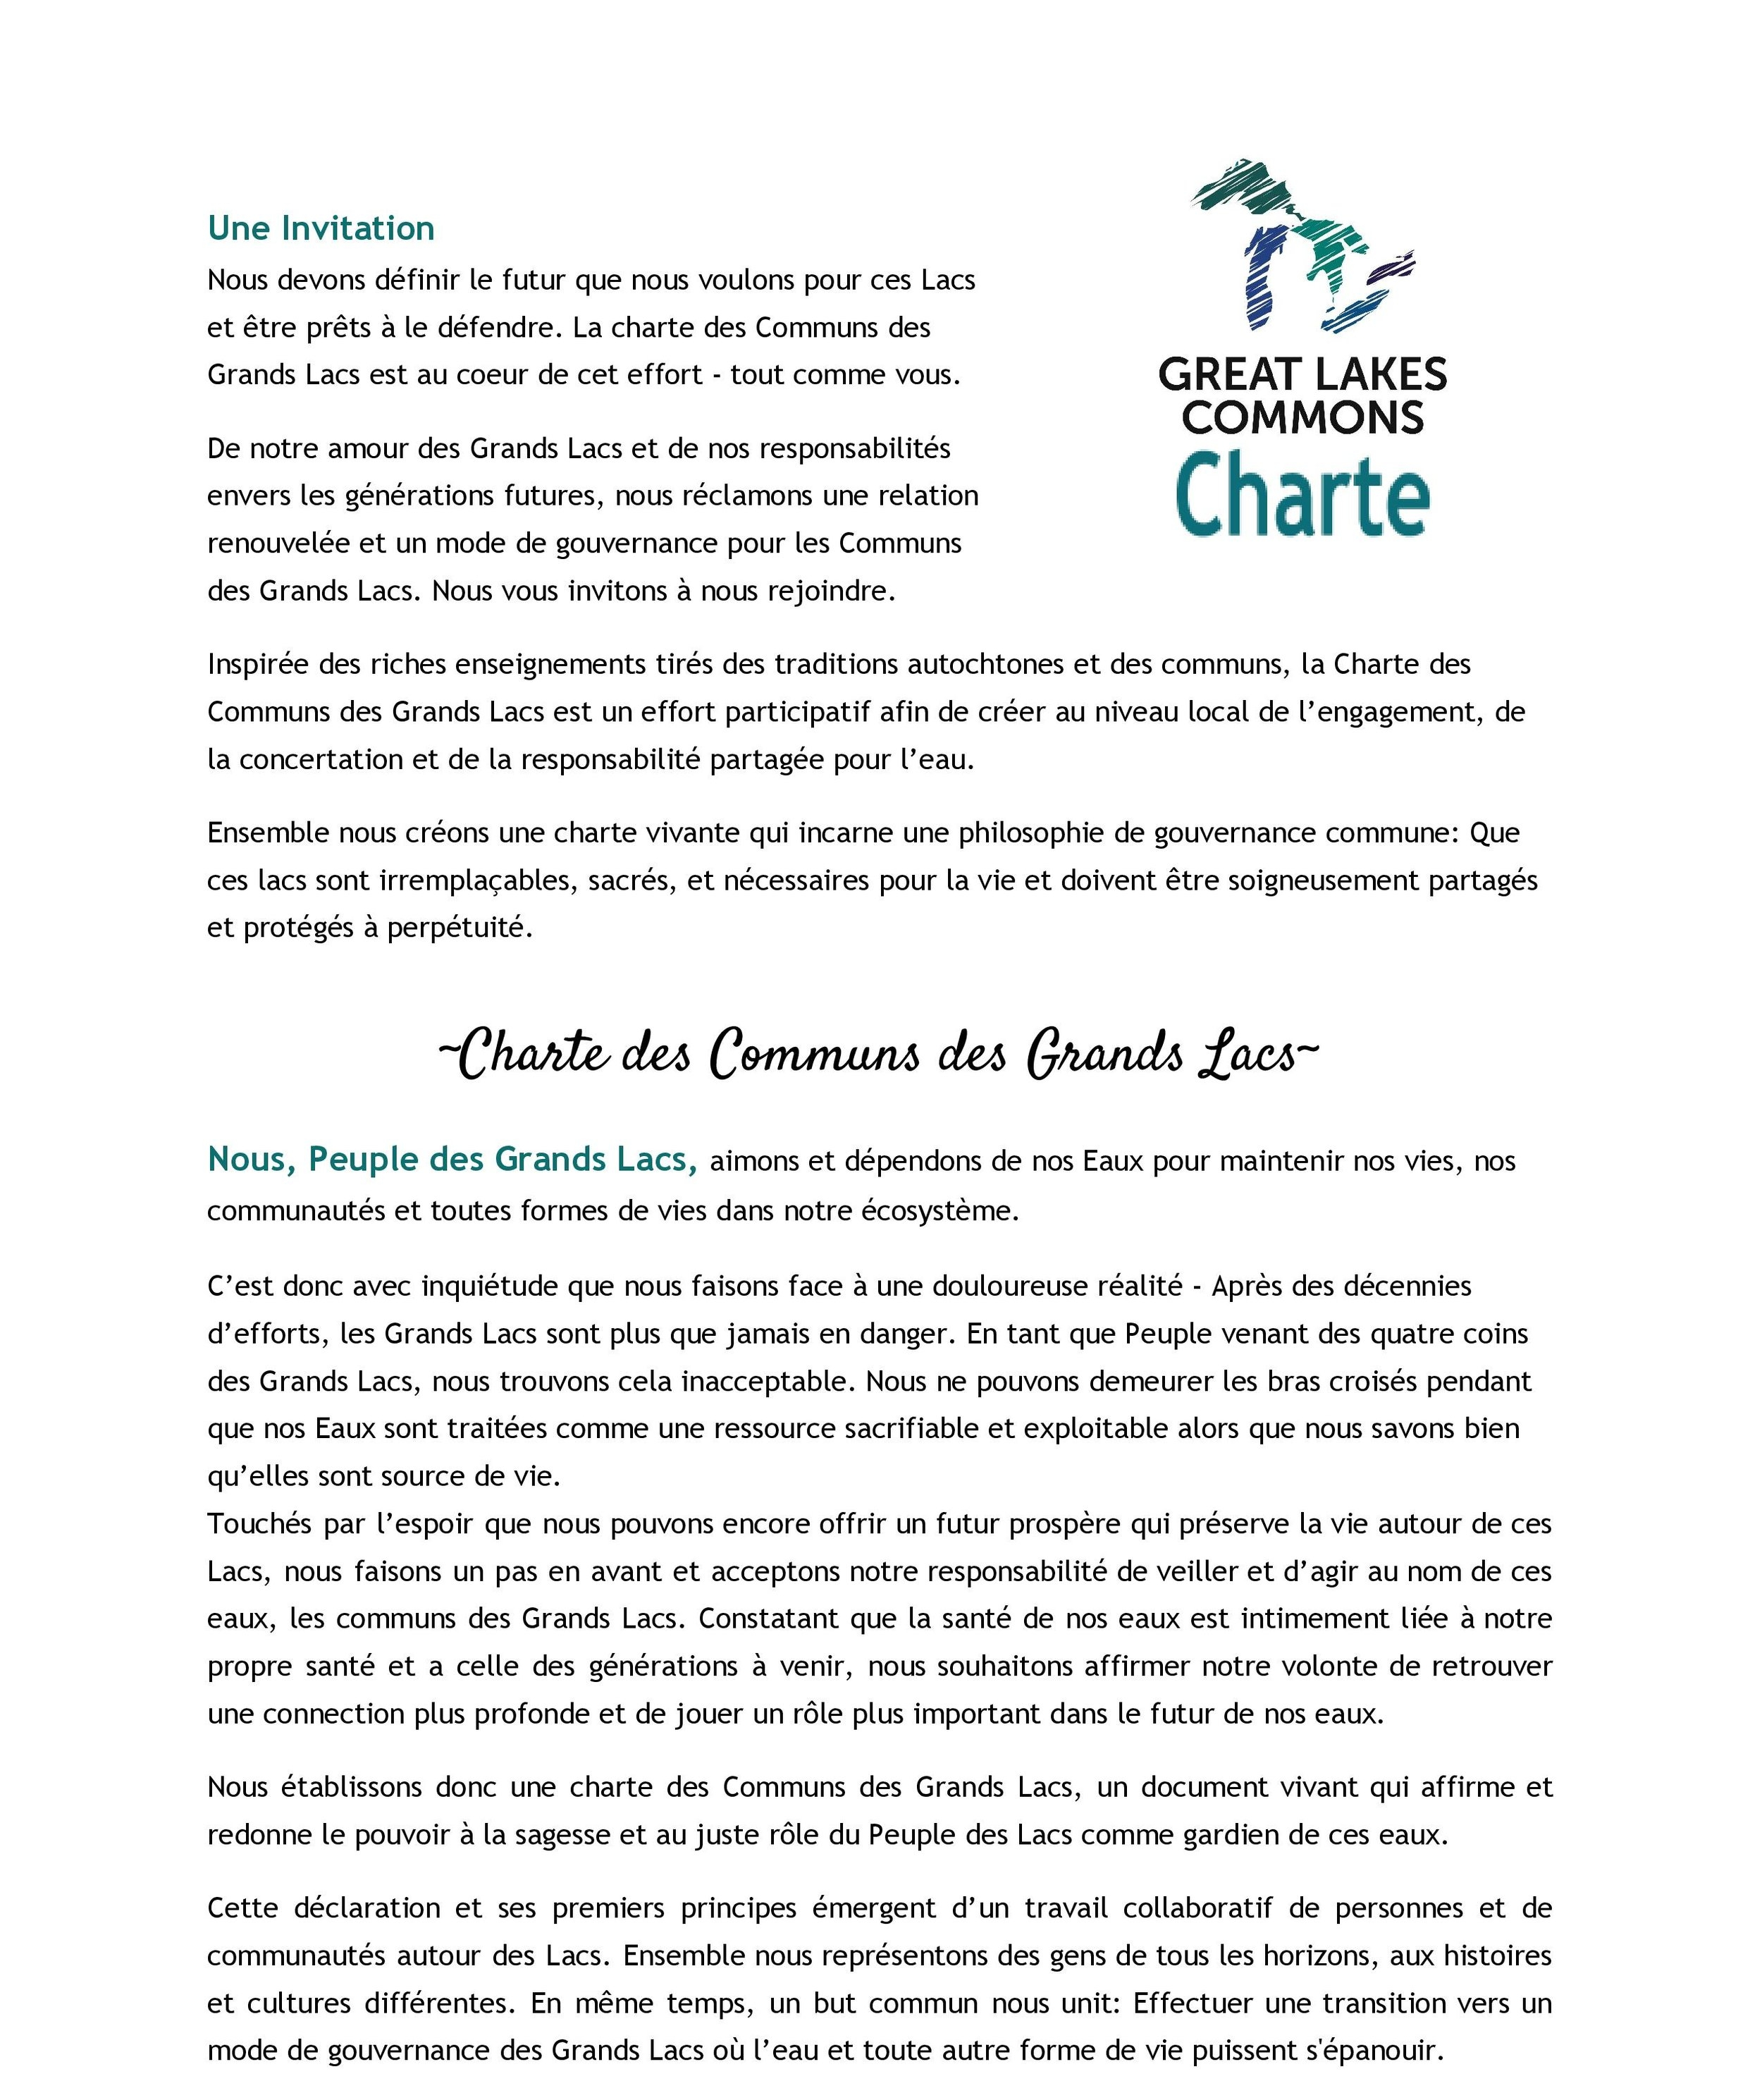 FrenchCharter(1)(2)-page-001.jpg